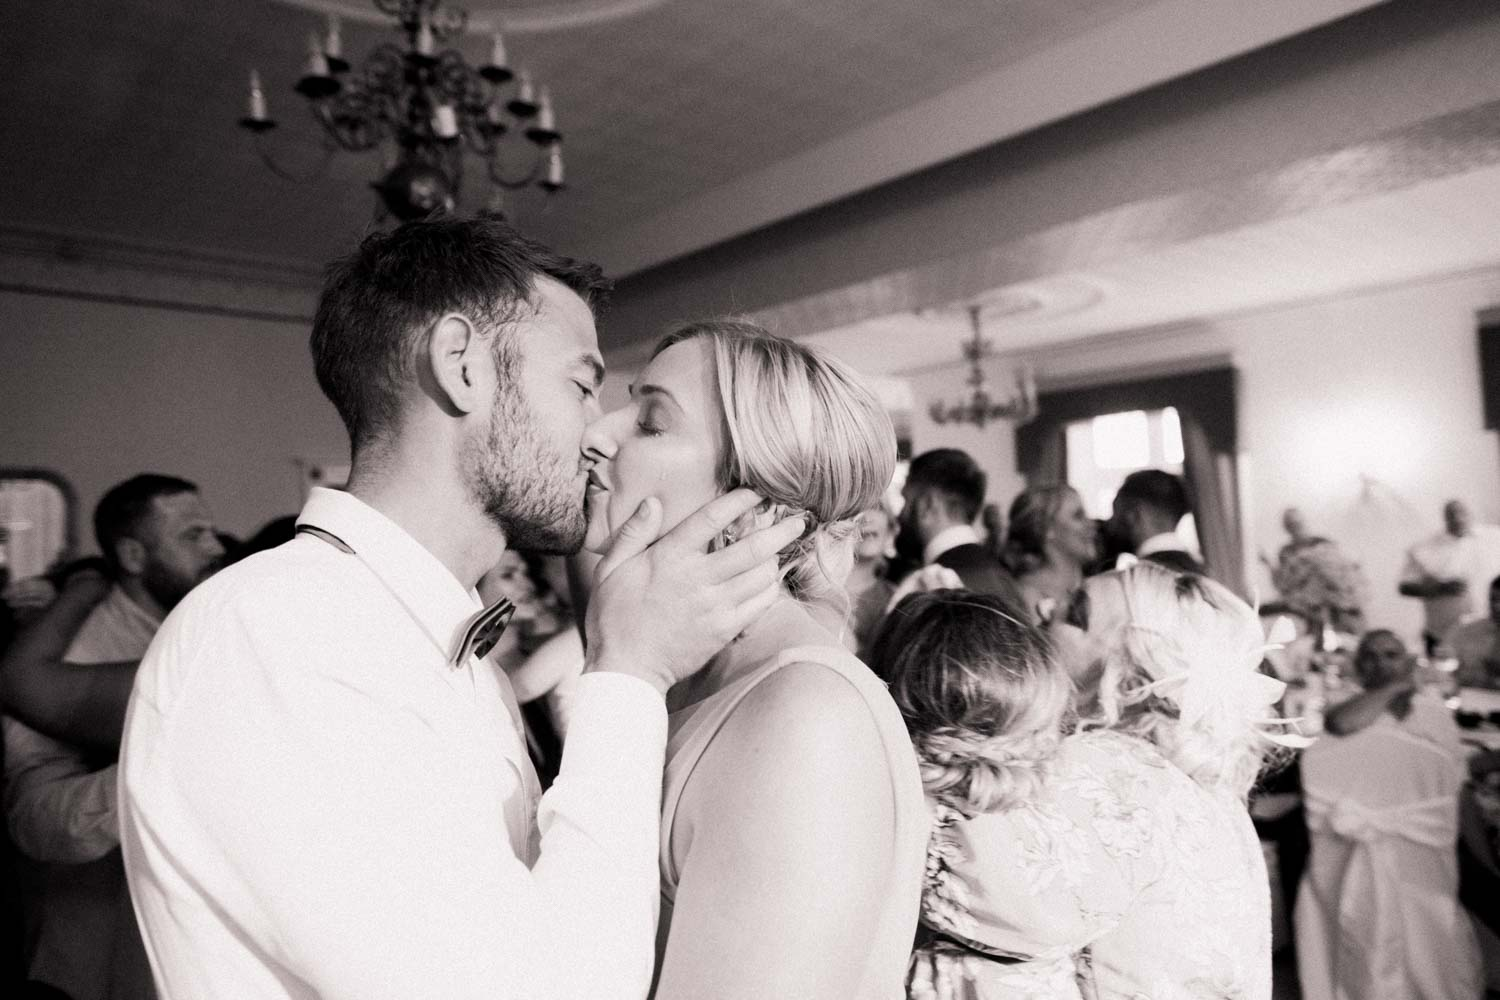 Young couple kiss, surrounded by guests on packed dance floor whilst a tear runs down her cheek